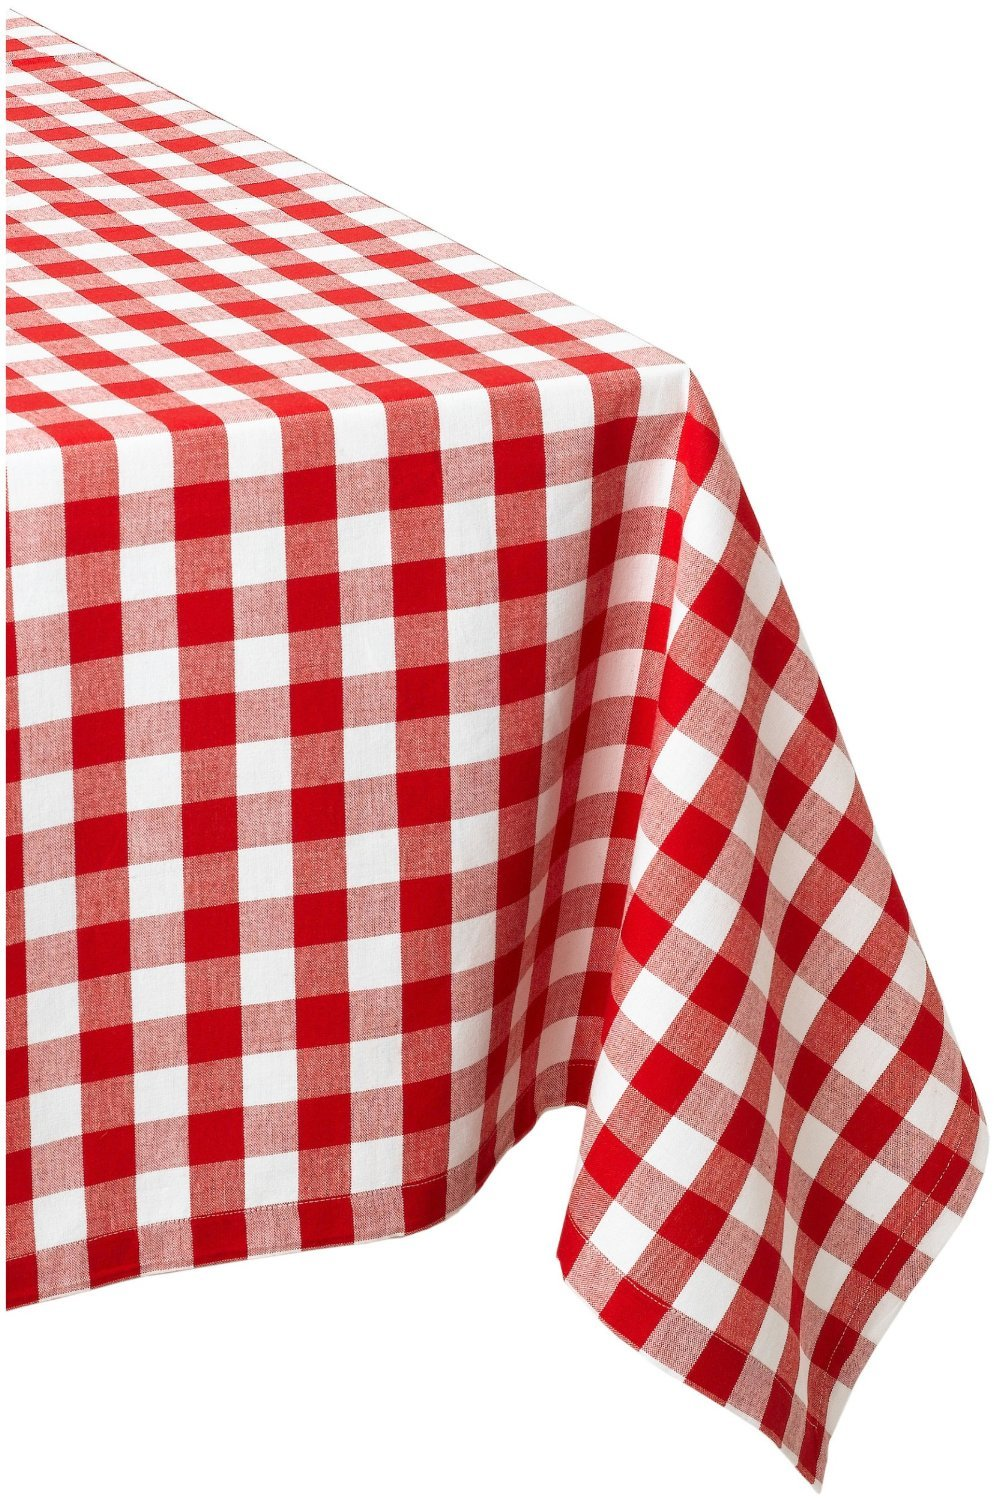 """DII 100% Cotton, Machine Washable, Dinner, Summer & Picnic Tablecloth 60 x 104"""", Tango Red Check, Seats 8 to 10 People"""